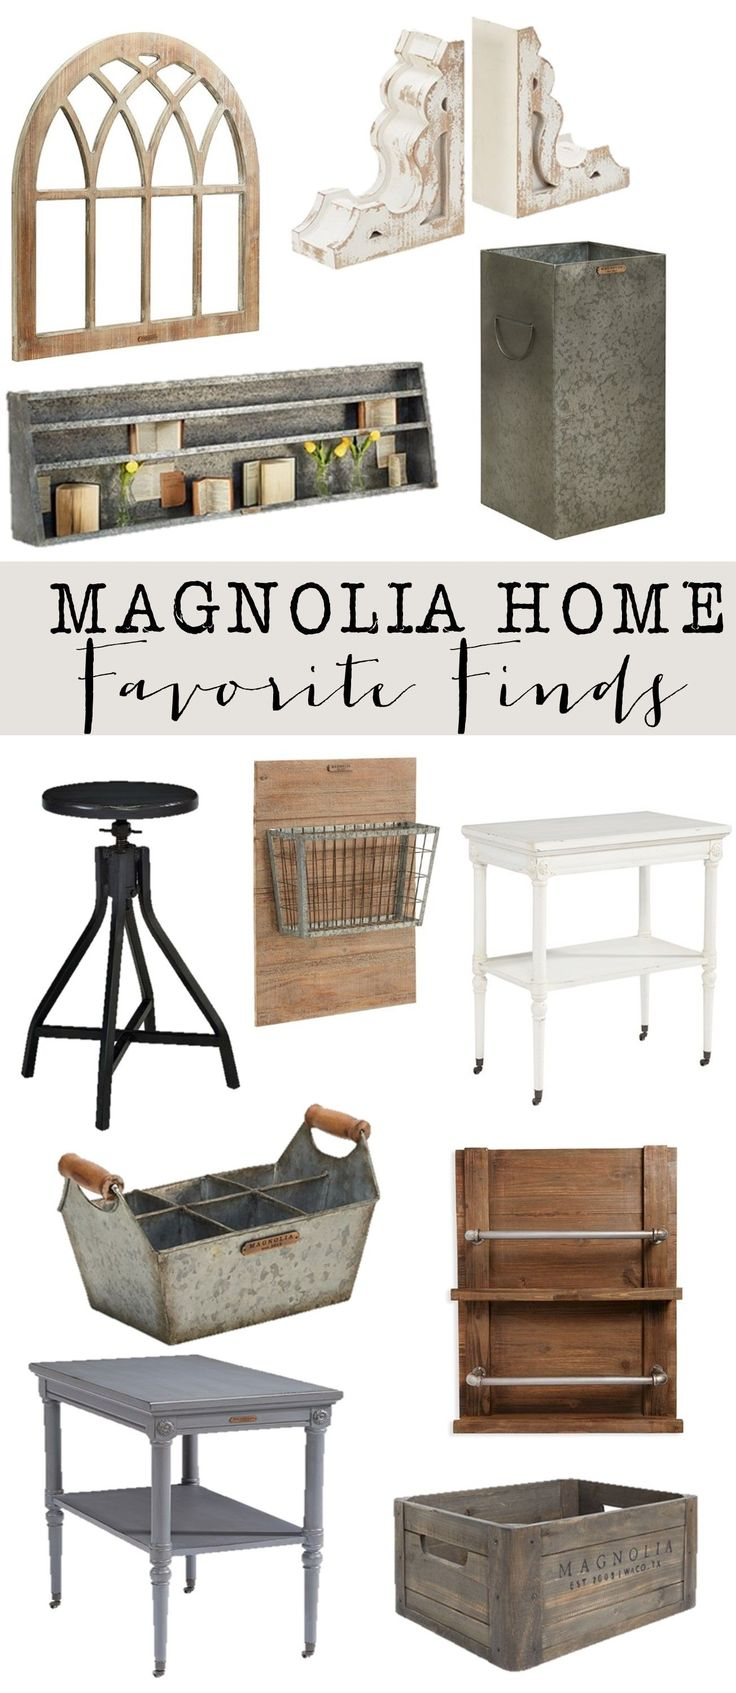 Best 25 Joanna gaines style ideas on Pinterest Joanna gaines